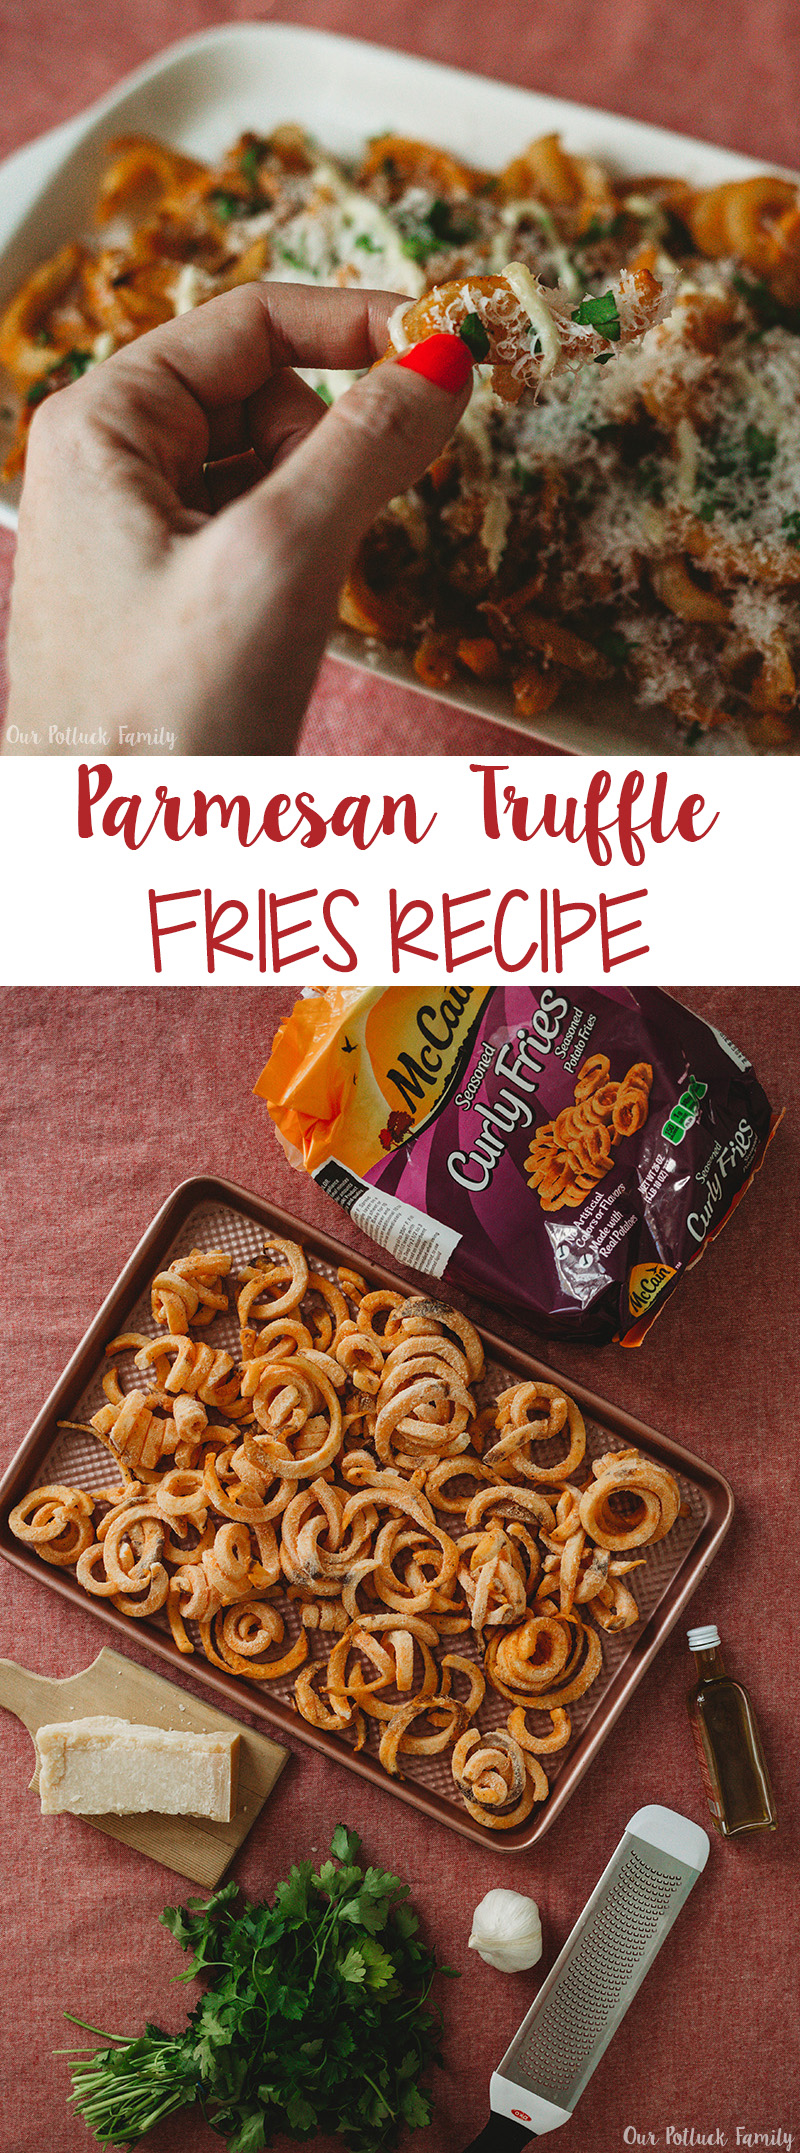 Parmesan Truffle Fries Recipe